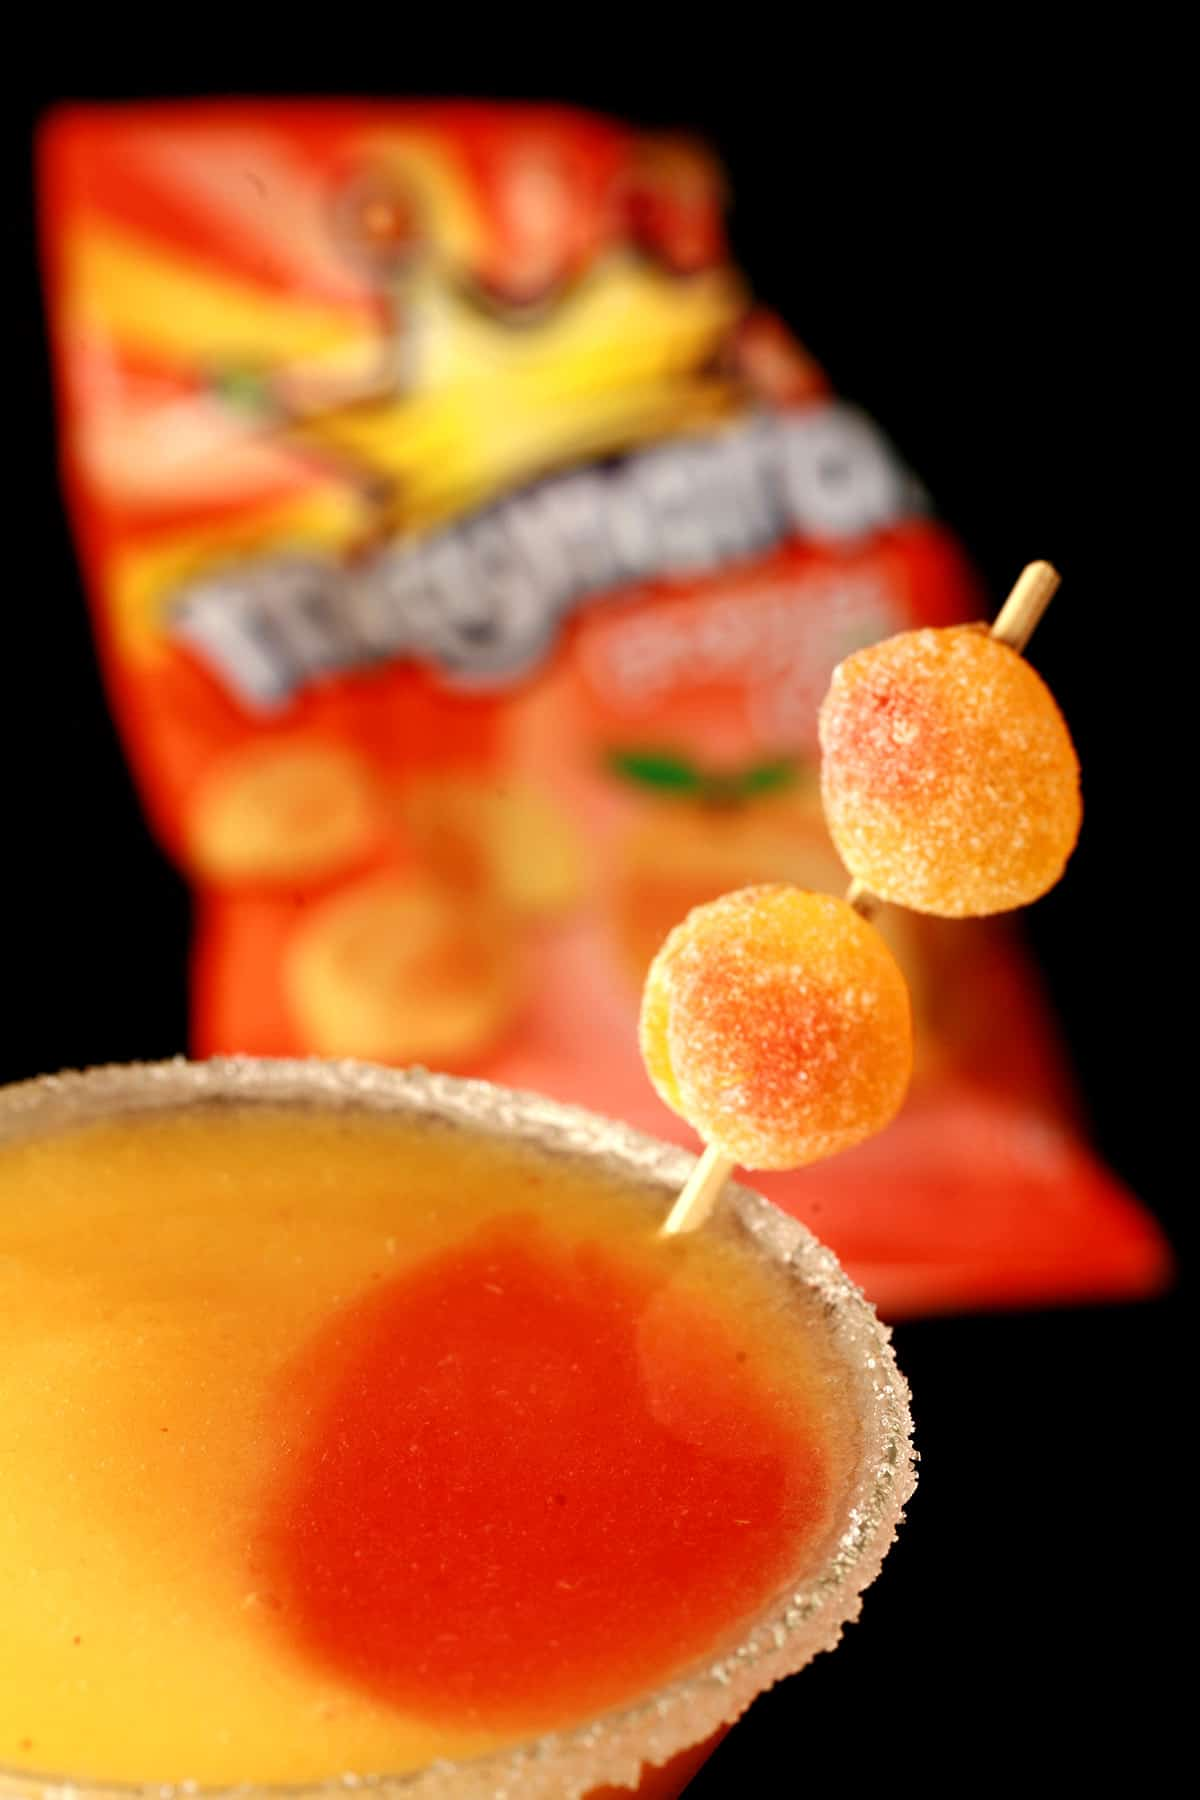 A close up view of a martini cocktail glass with fuzzy peach candy cocktail - a peach coloured slush with a round section of red slush in it, garnished with gummy candies. There is a bag of the namesake candy in the background.